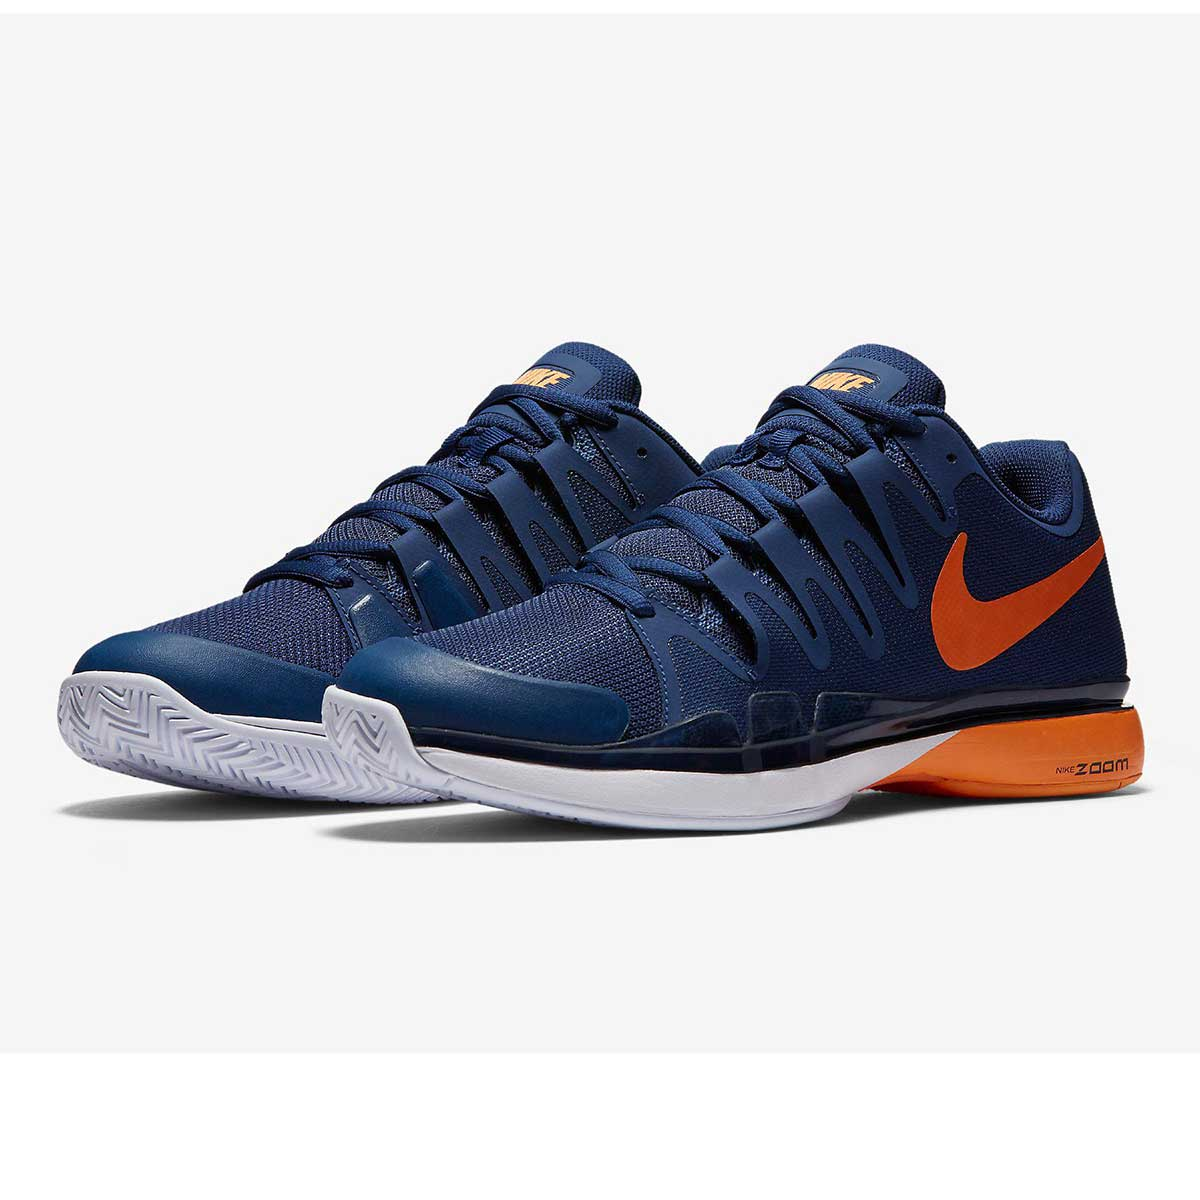 promo code f790e 92ff0 Buy Nike Zoom Vapor 9.5 Tour Tennis Shoes (Blue Bright Citrus) Online